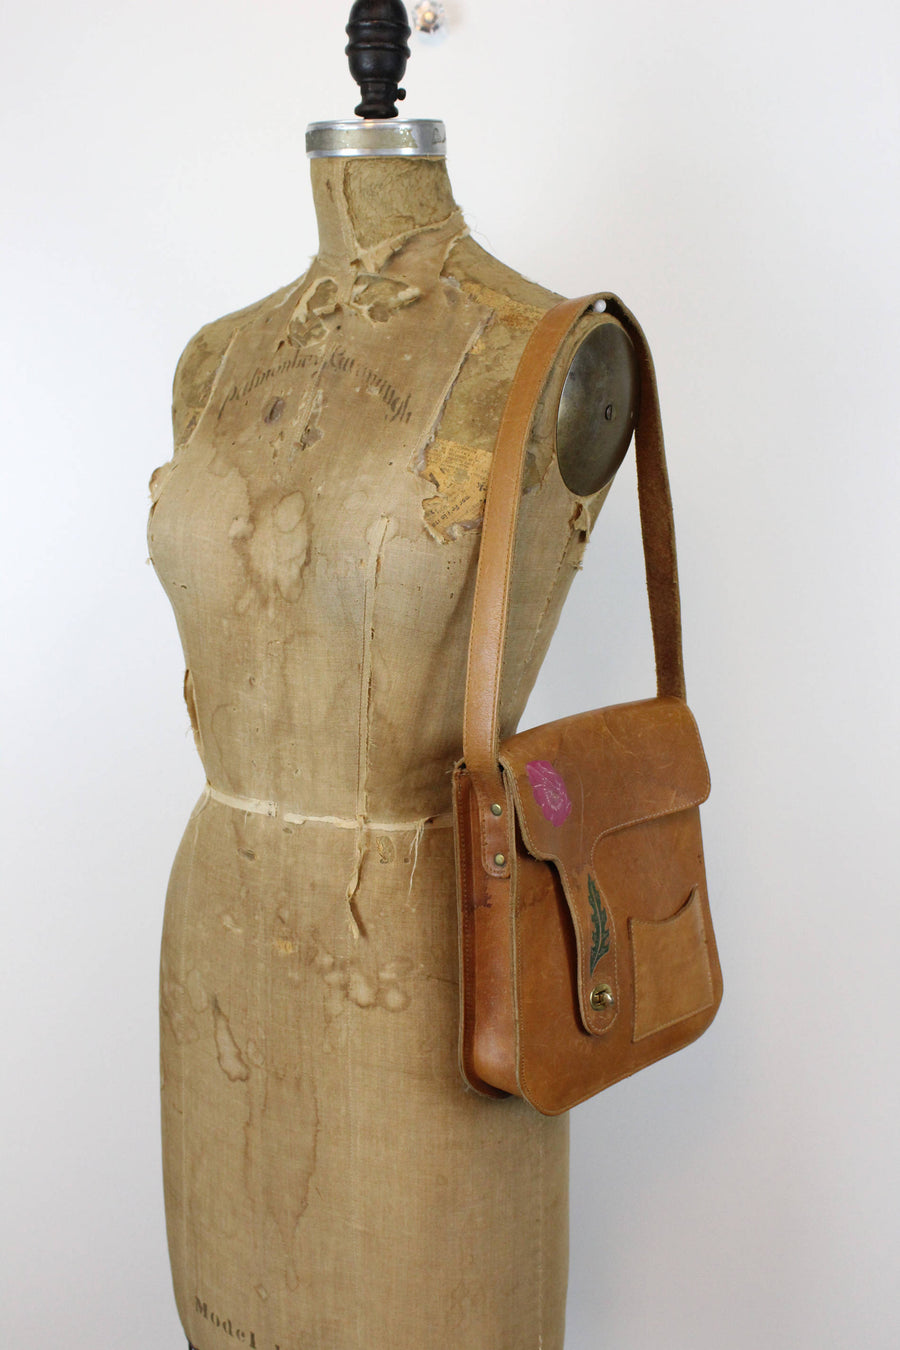 70s Tooled Leather Shoulderbag / 1970s Carved Leather Saddle Bag / Little Poppy Purse